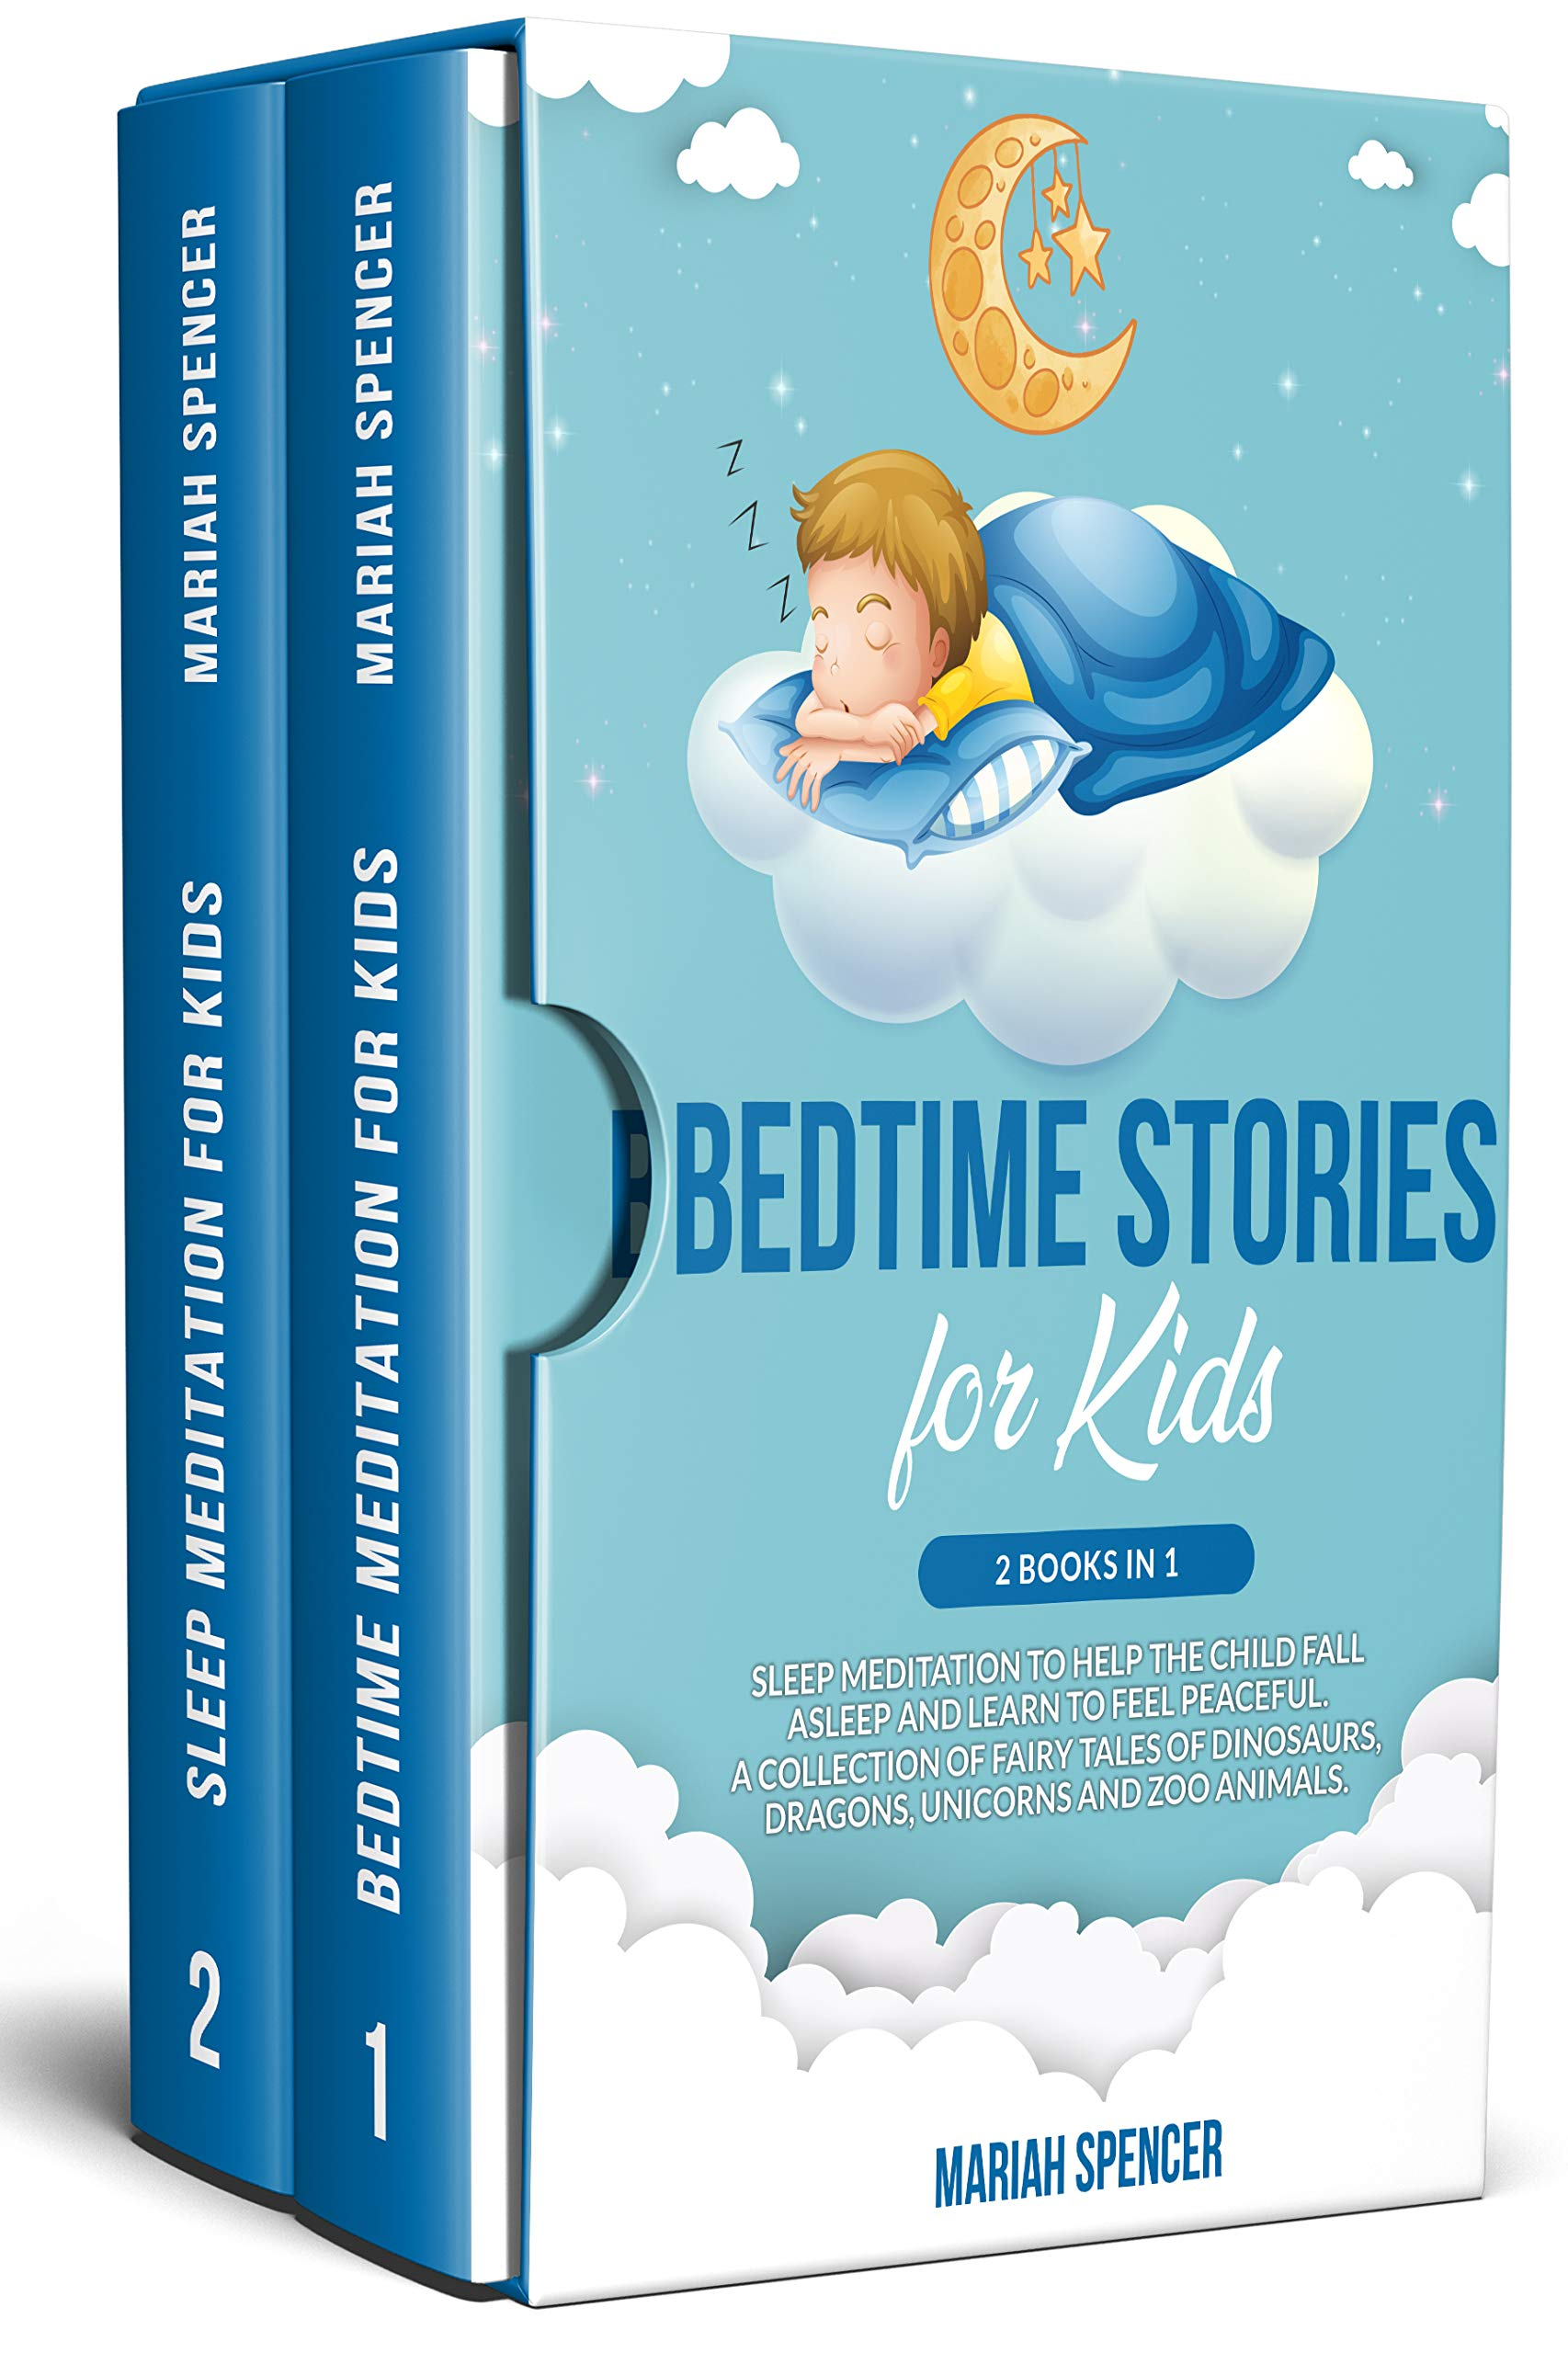 Bedtime stories for kids: 2 books in 1: Sleep meditation to help the child fall asleep and learn to feel peaceful. A collection of fairy tales of Dinosaurs, Dragons, Unicorns, and Zoo Animals.